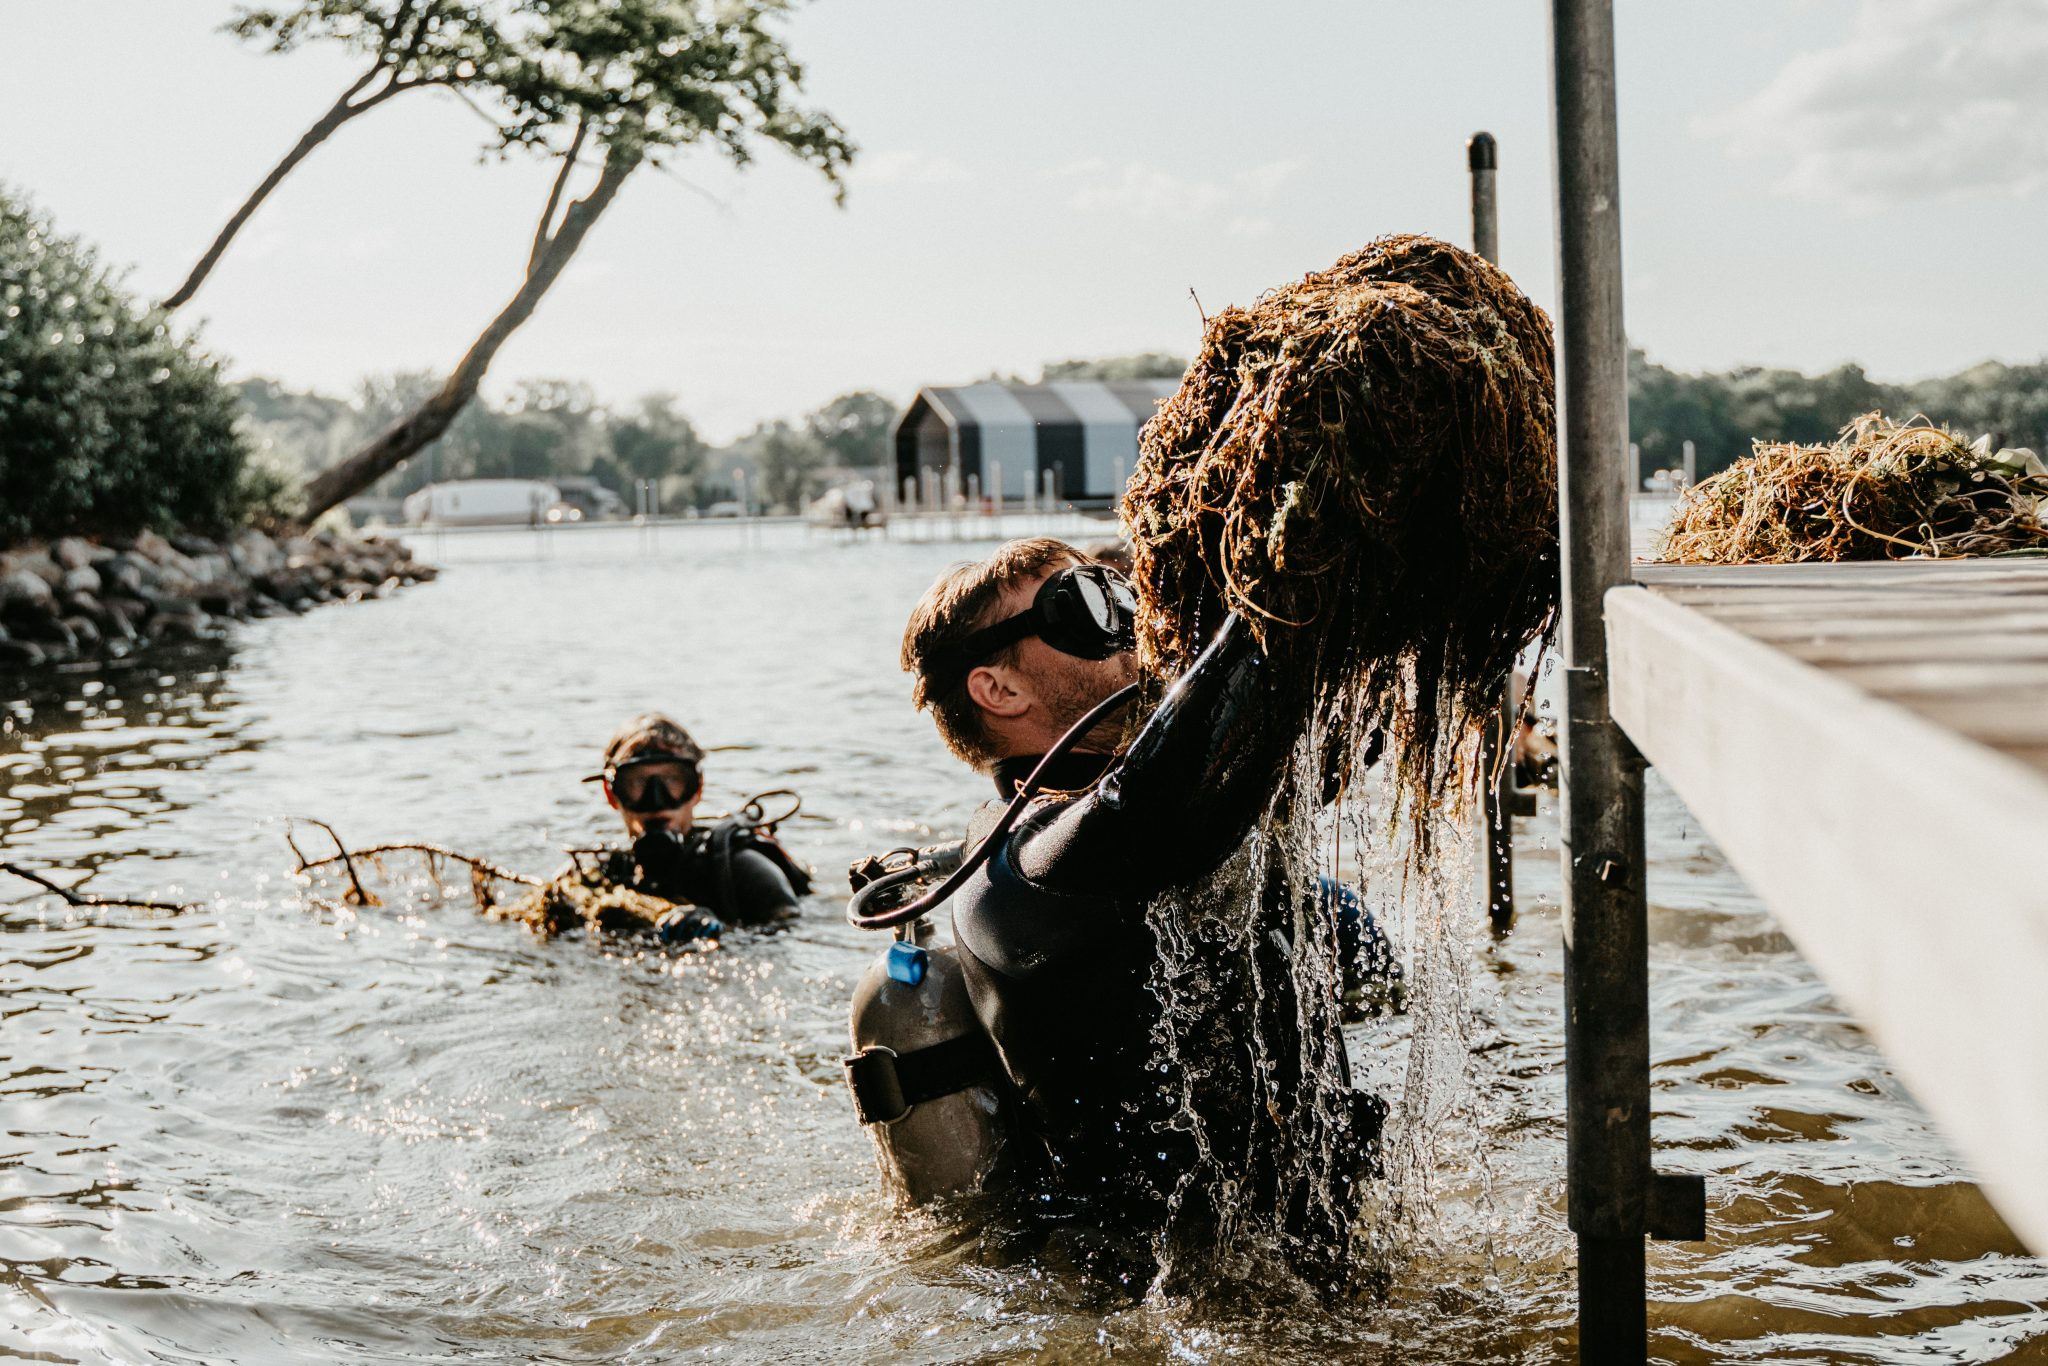 SCUBA diver gets to the root of these lake weeds and hoists a mass of weeds onto a dock.